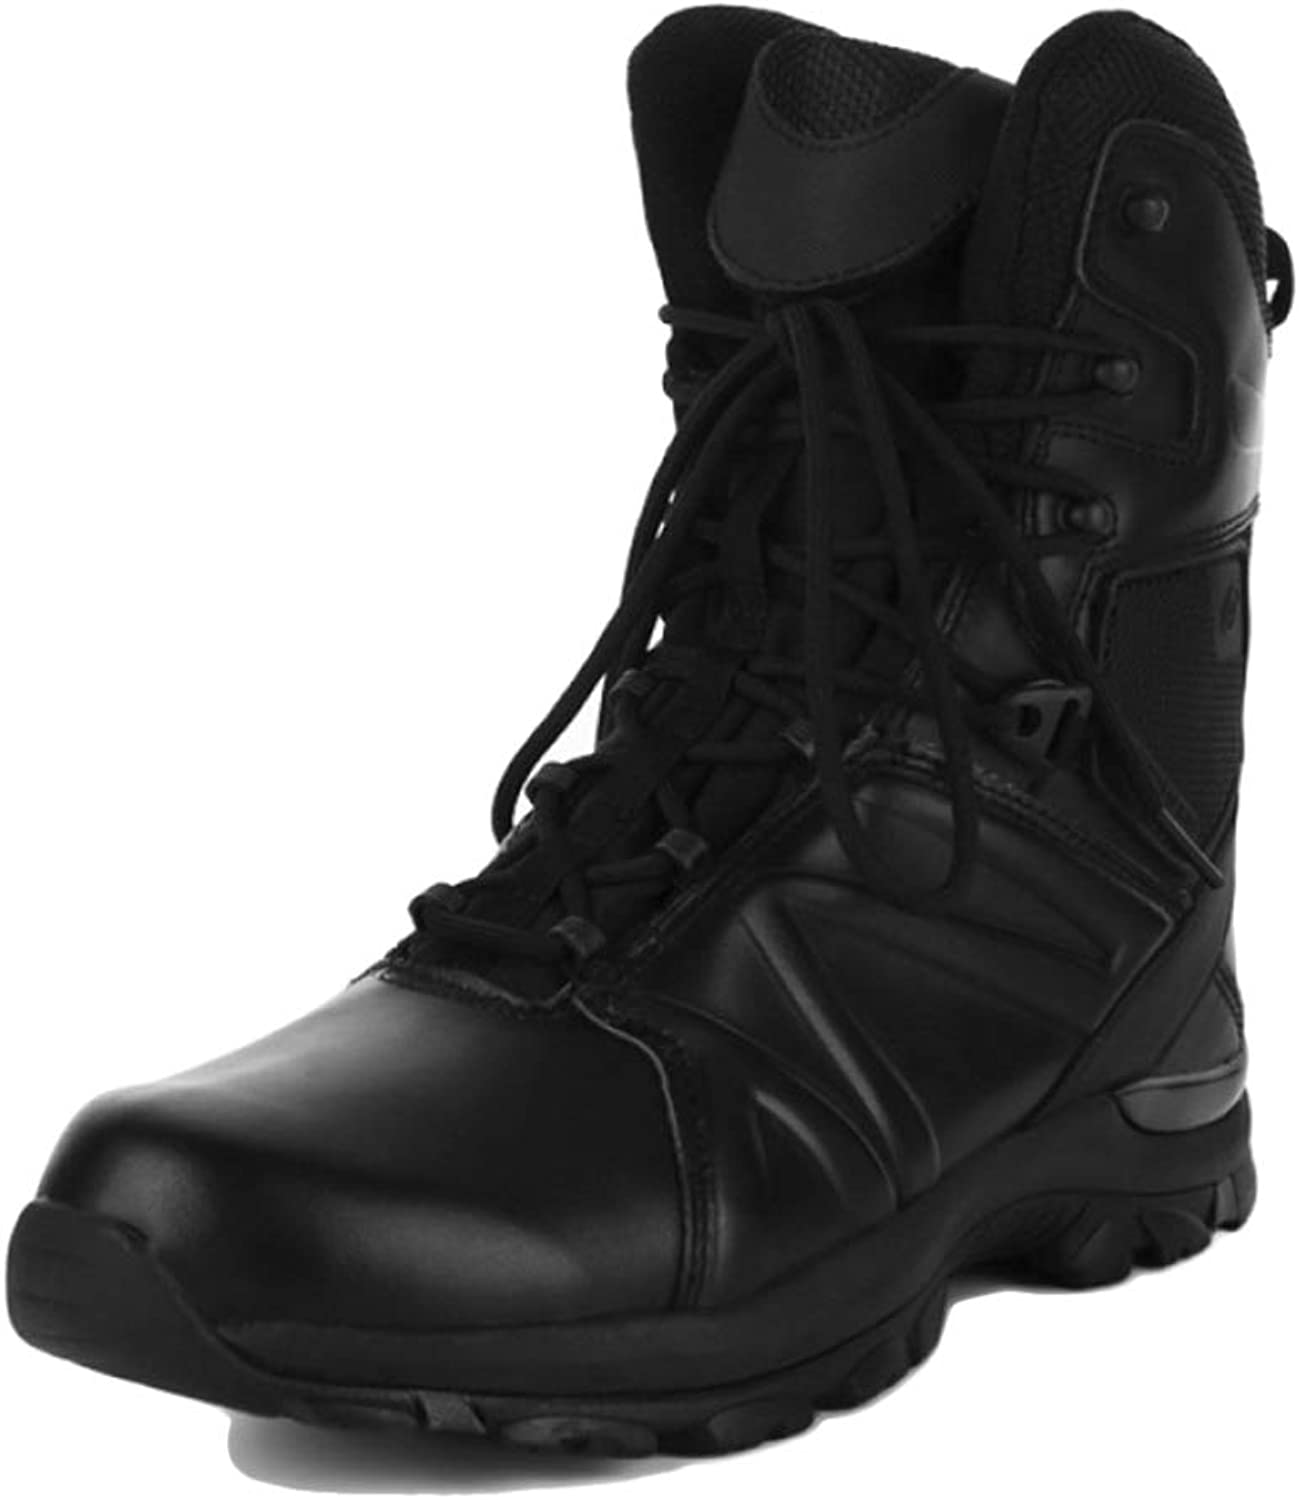 YC Mens Leather Steel Toe Cap Military Combat Ankle Boots Safety Trainers Police Work shoes Martin Boots Safety Predection Special Service shoes